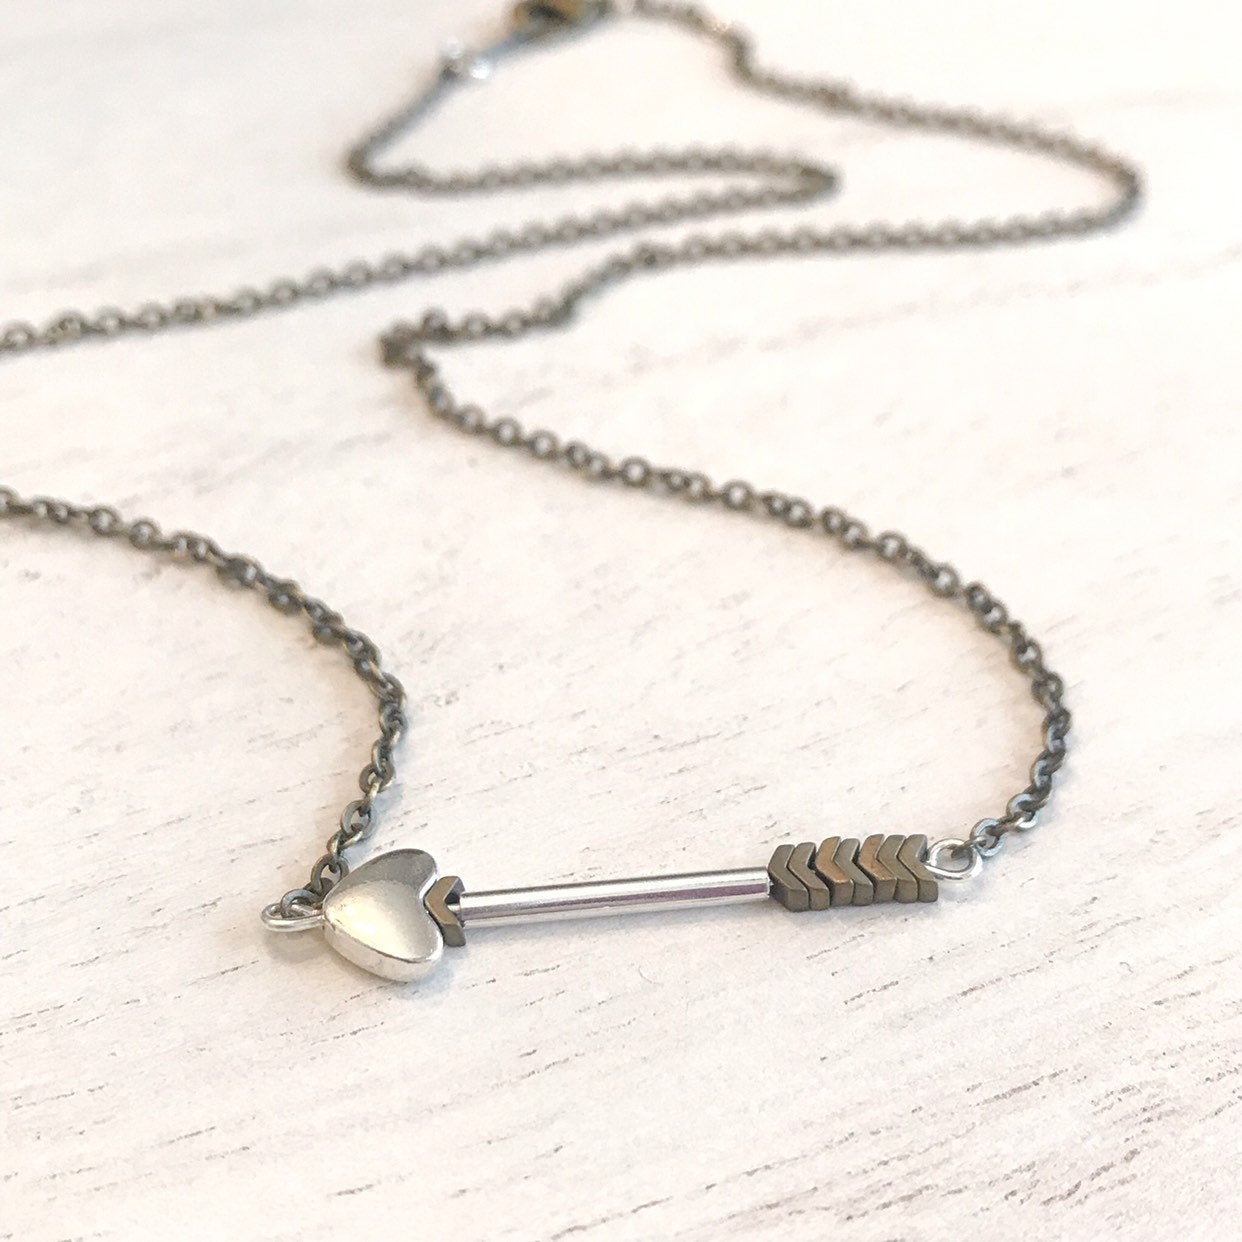 Cupid's Arrow Necklace, Arrow Necklace, Gift For Her Throughout 2019 Arrow Of Cupid Dangle Charm Necklaces (View 23 of 25)